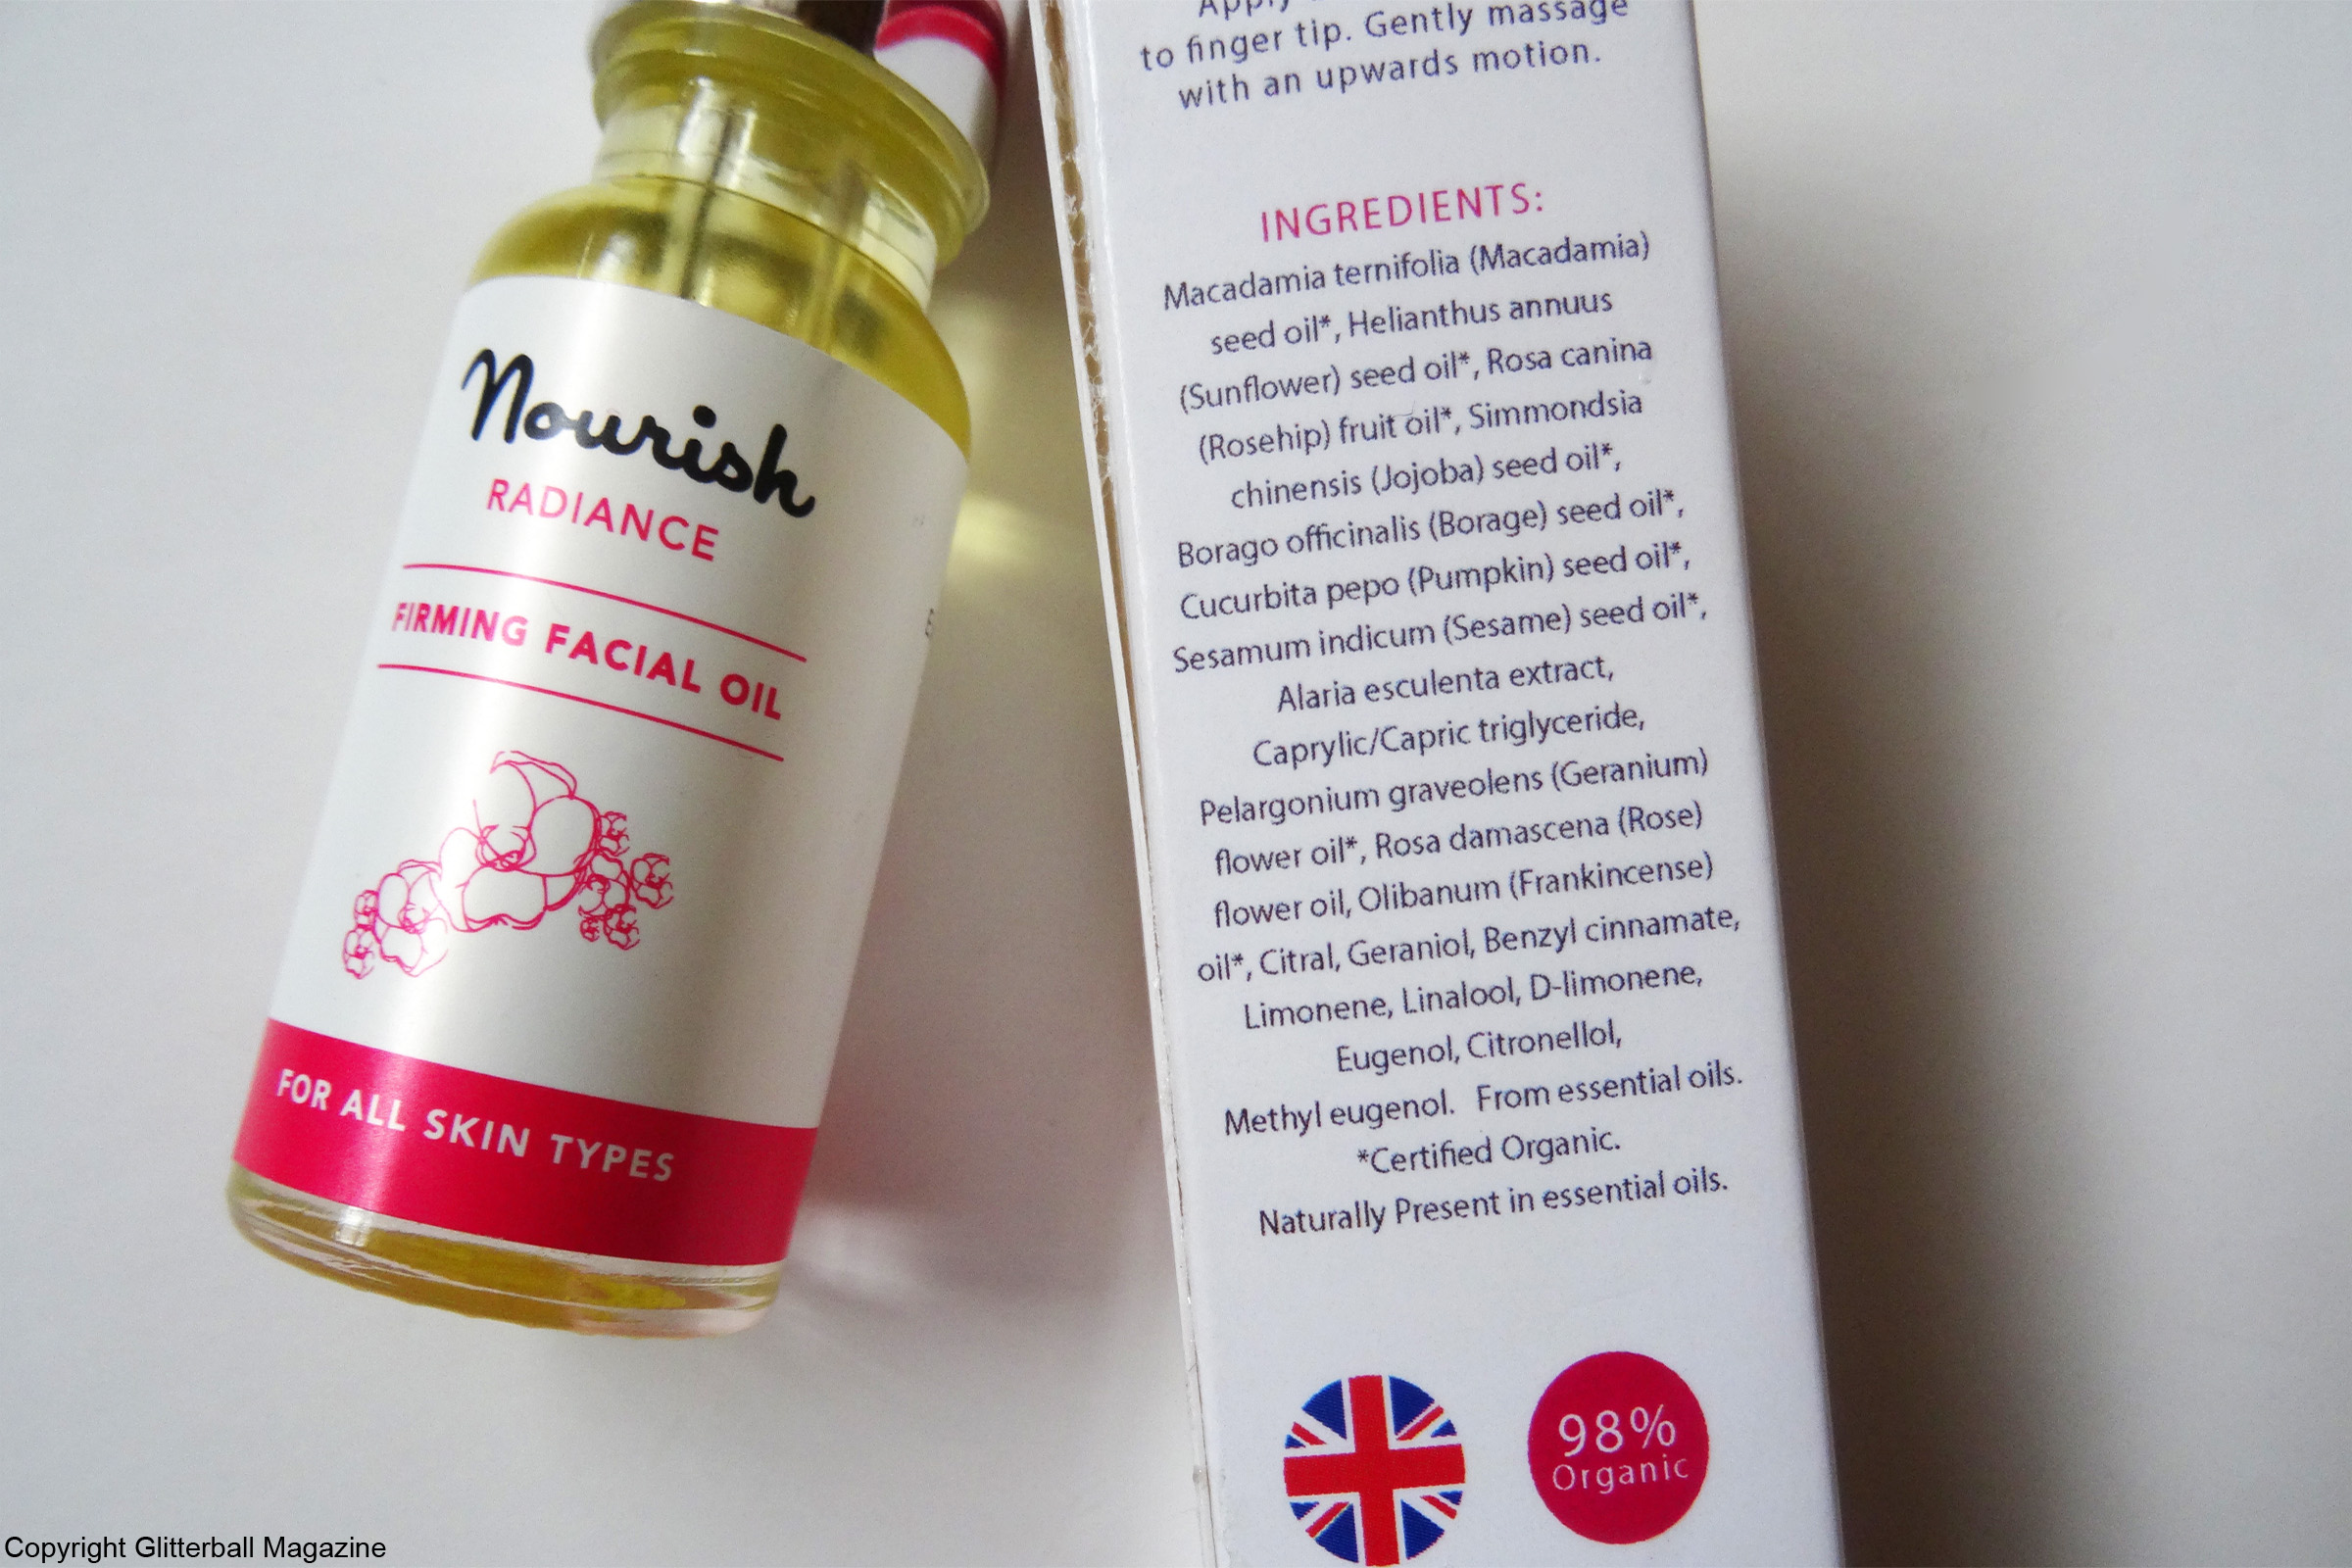 Nourish Radiance Firming Facial Oil 3